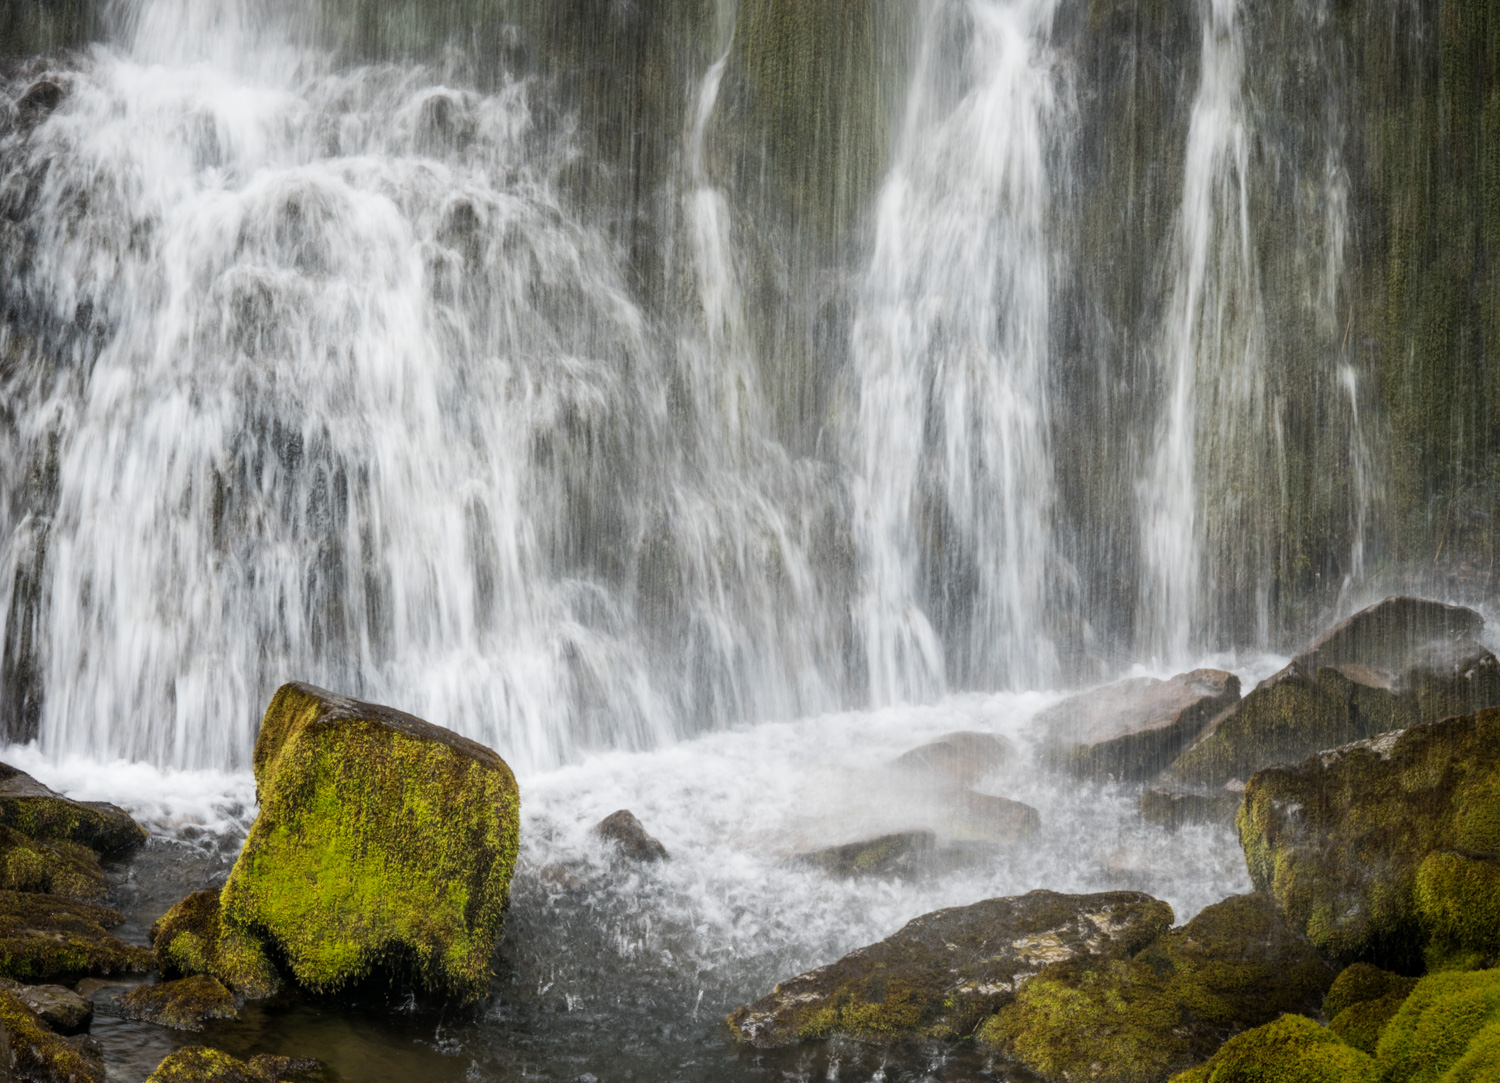 Review of the Olympus 300mm F4 PRO Lens - waterfall in Alaska